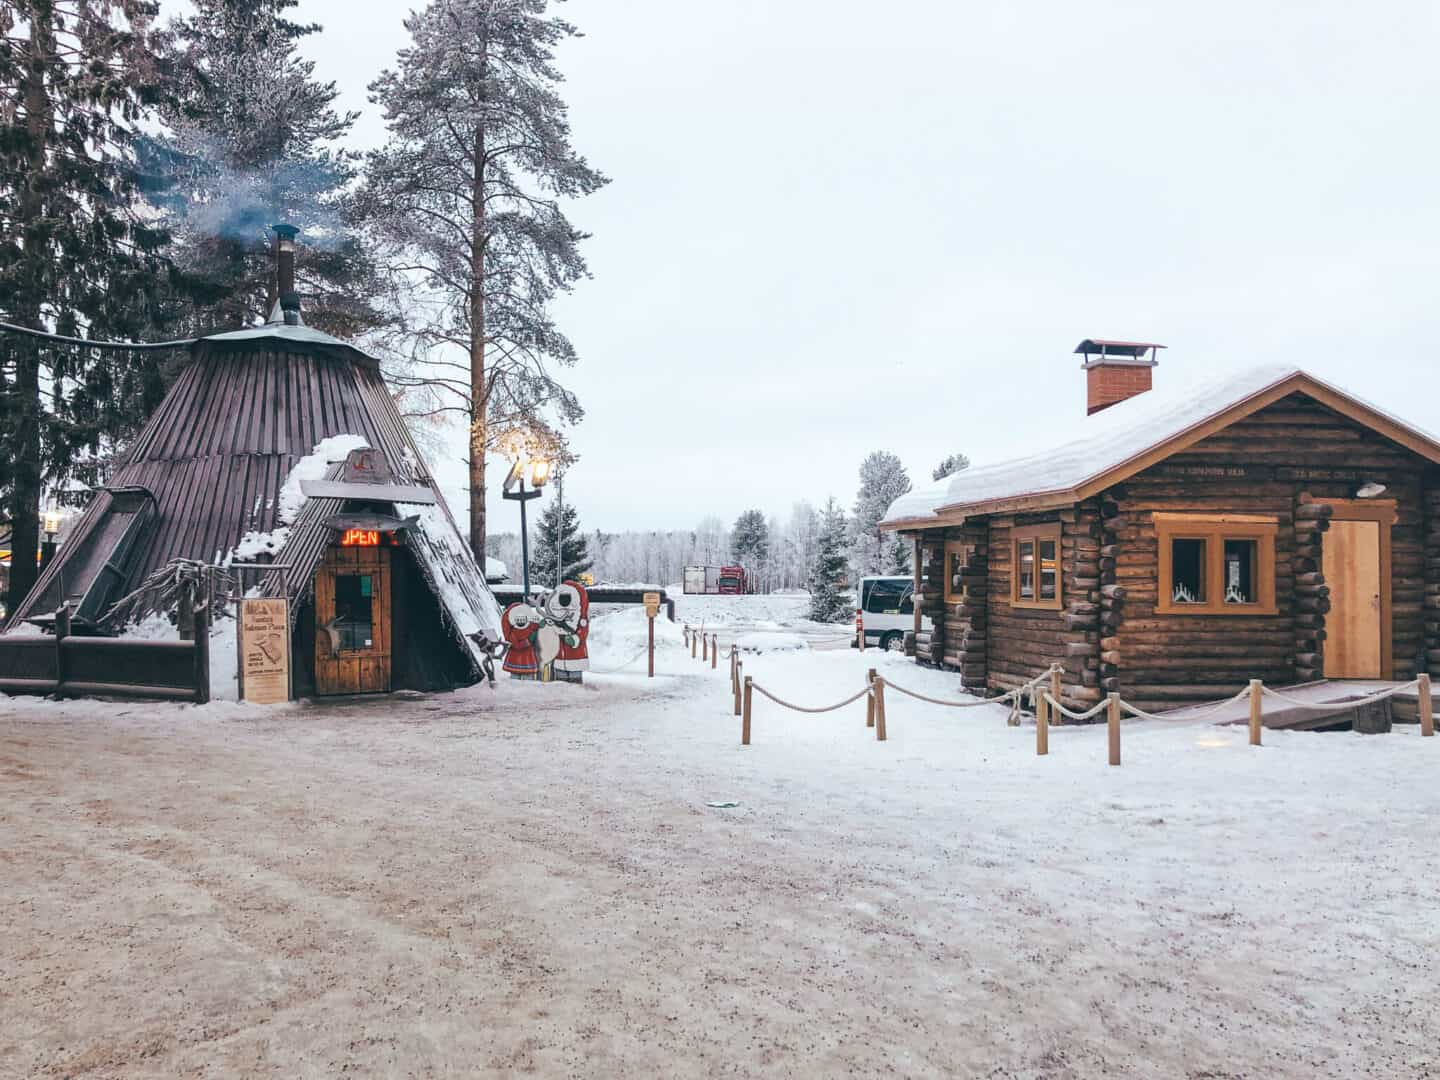 A Finnish Teepee next to a log cabin surrounded by snow